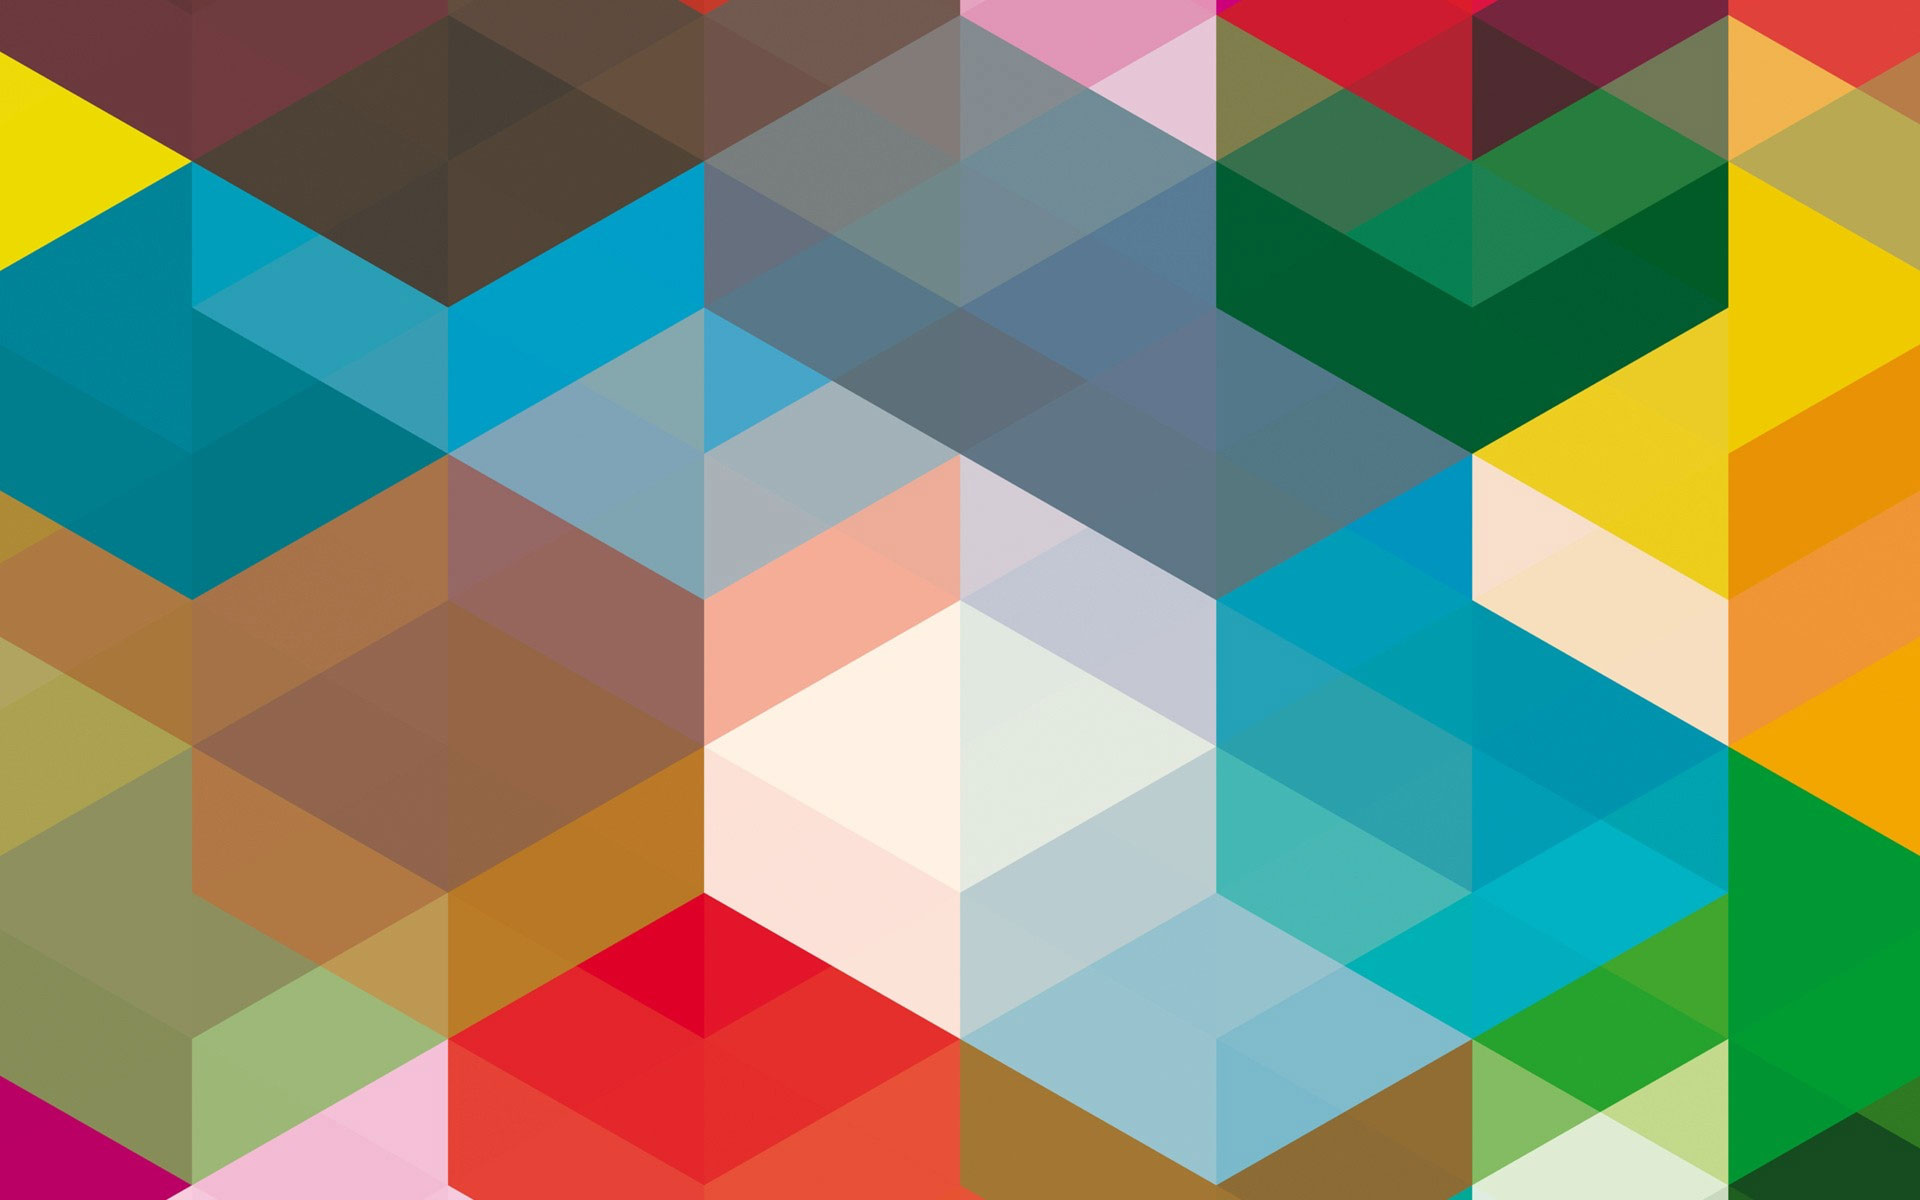 6840391-shapes-background19